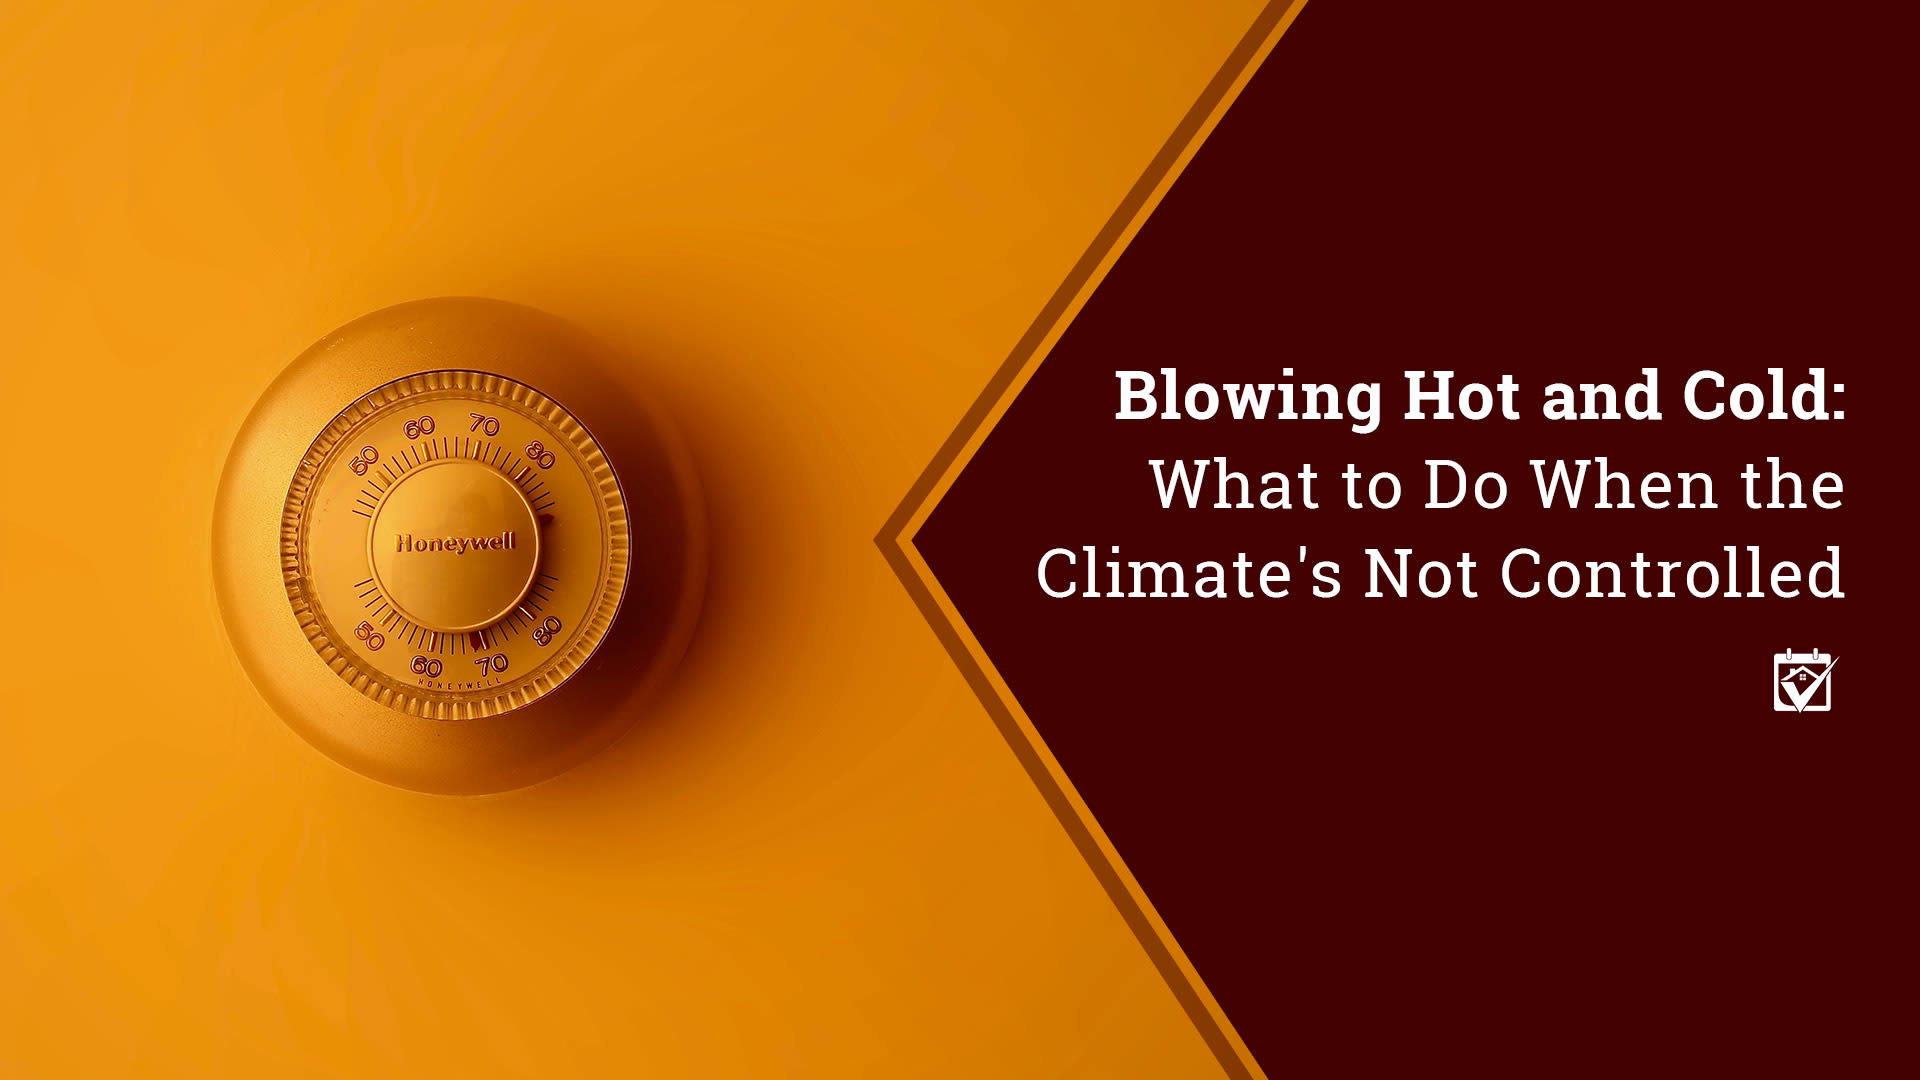 Blowing Hot and Cold What to Do When the Climates Not Controlled